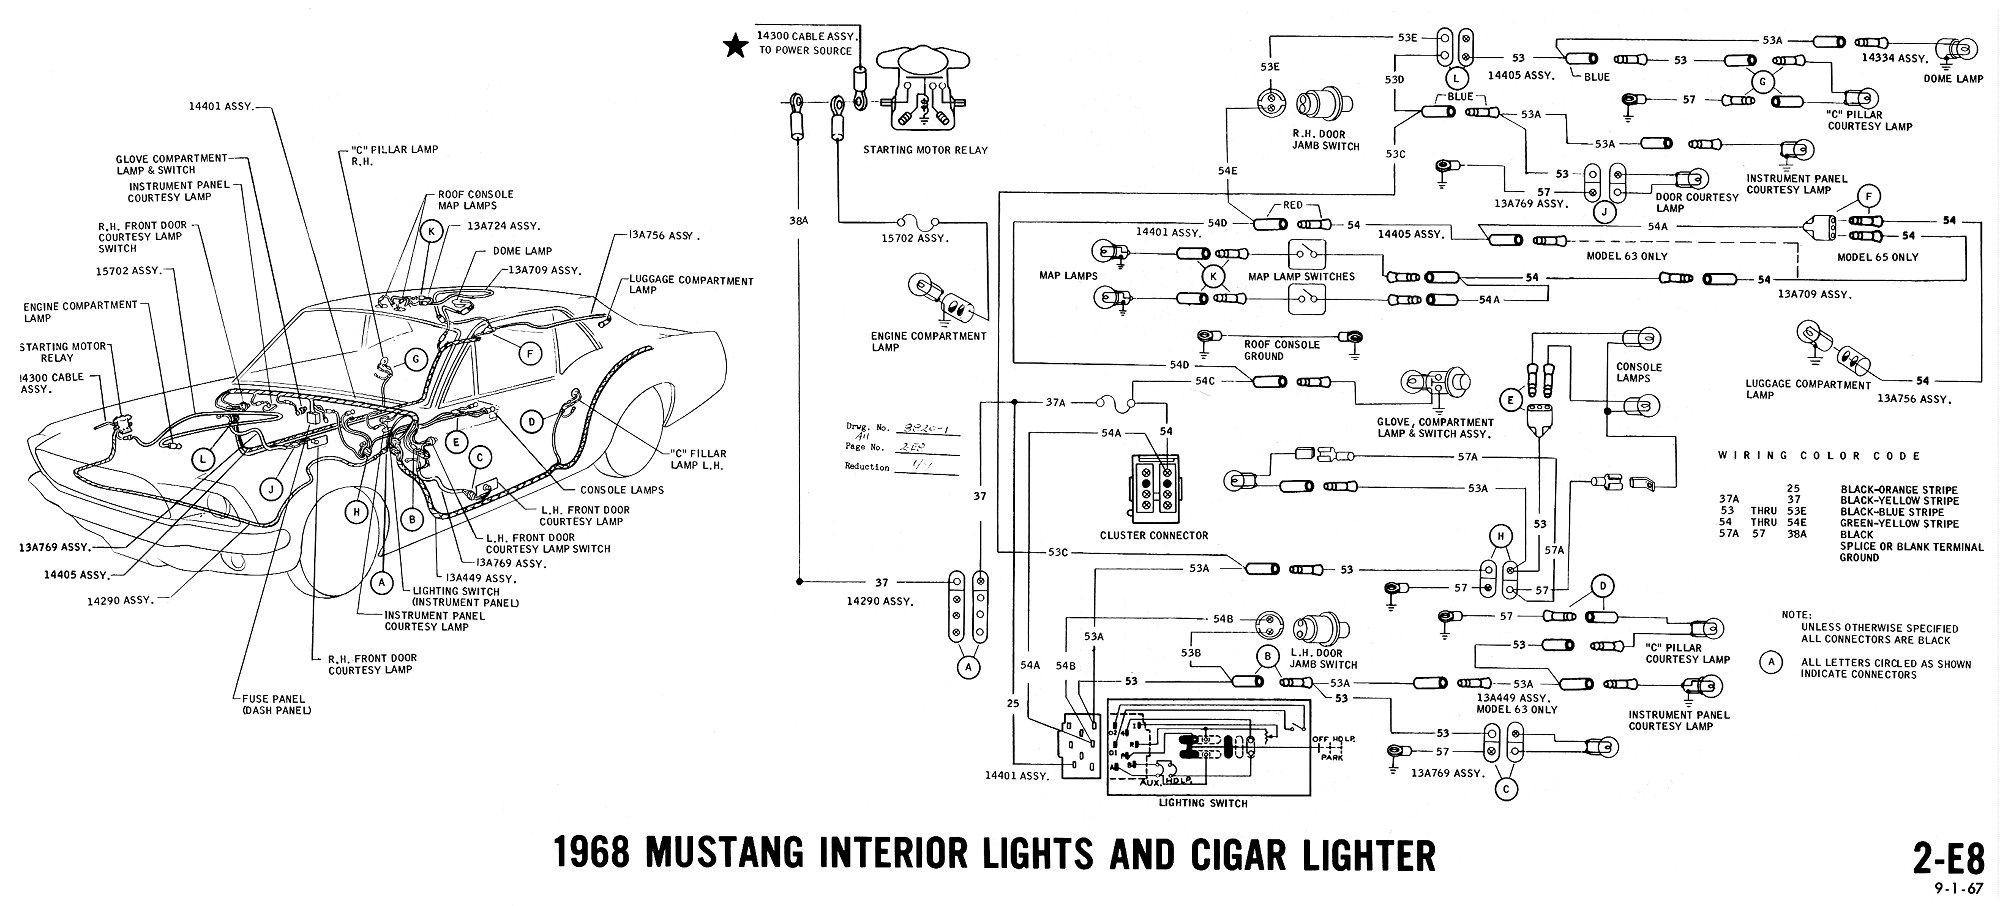 Air Conditioning Wiring Diagram 1995 Mustang Gt Harness 1994 F 250 Dome Light 1968 Diagrams Evolving Software Rh Peterfranza Com Gmc Tail F250 Speaker